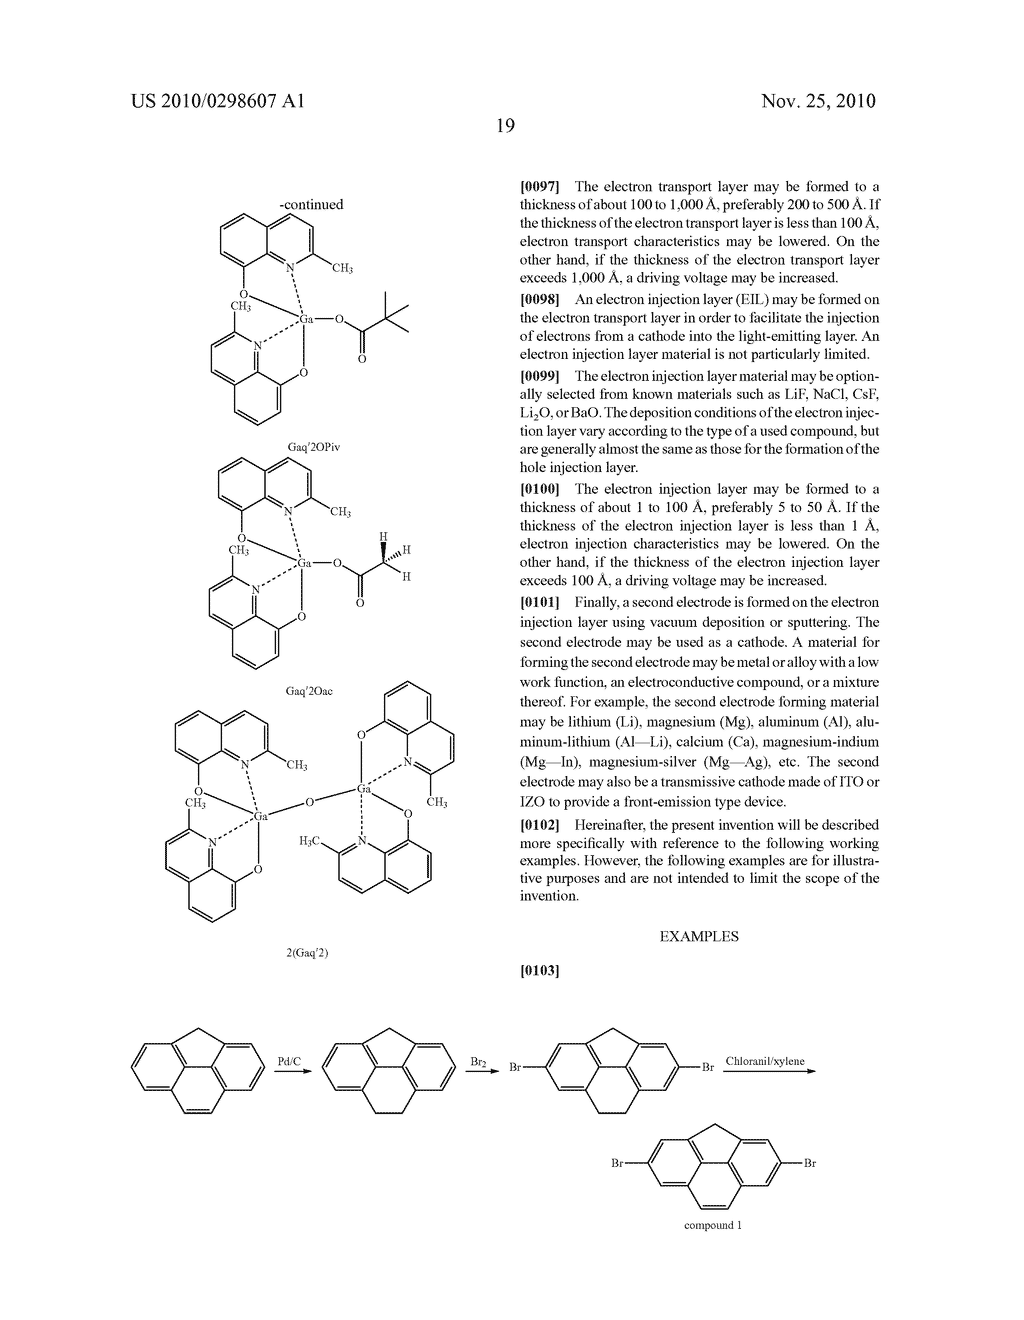 CYCLOPENTAPHENANTHRENE-BASED COMPOUND AND ORGANIC ELECTROLUMINESCENT DEVICE USING THE SAME - diagram, schematic, and image 23